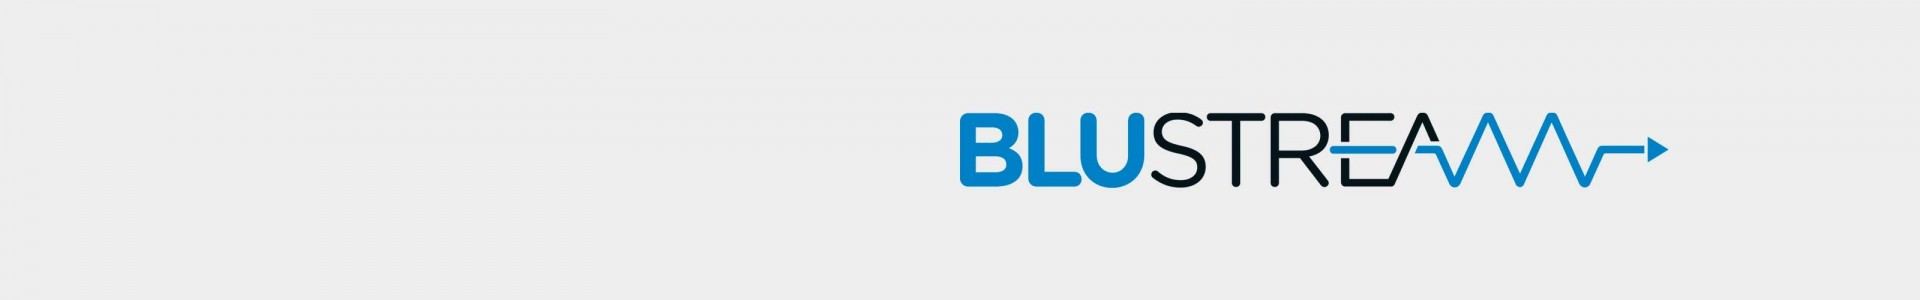 Blustream video matrixes at Avacab - Quality at the best price